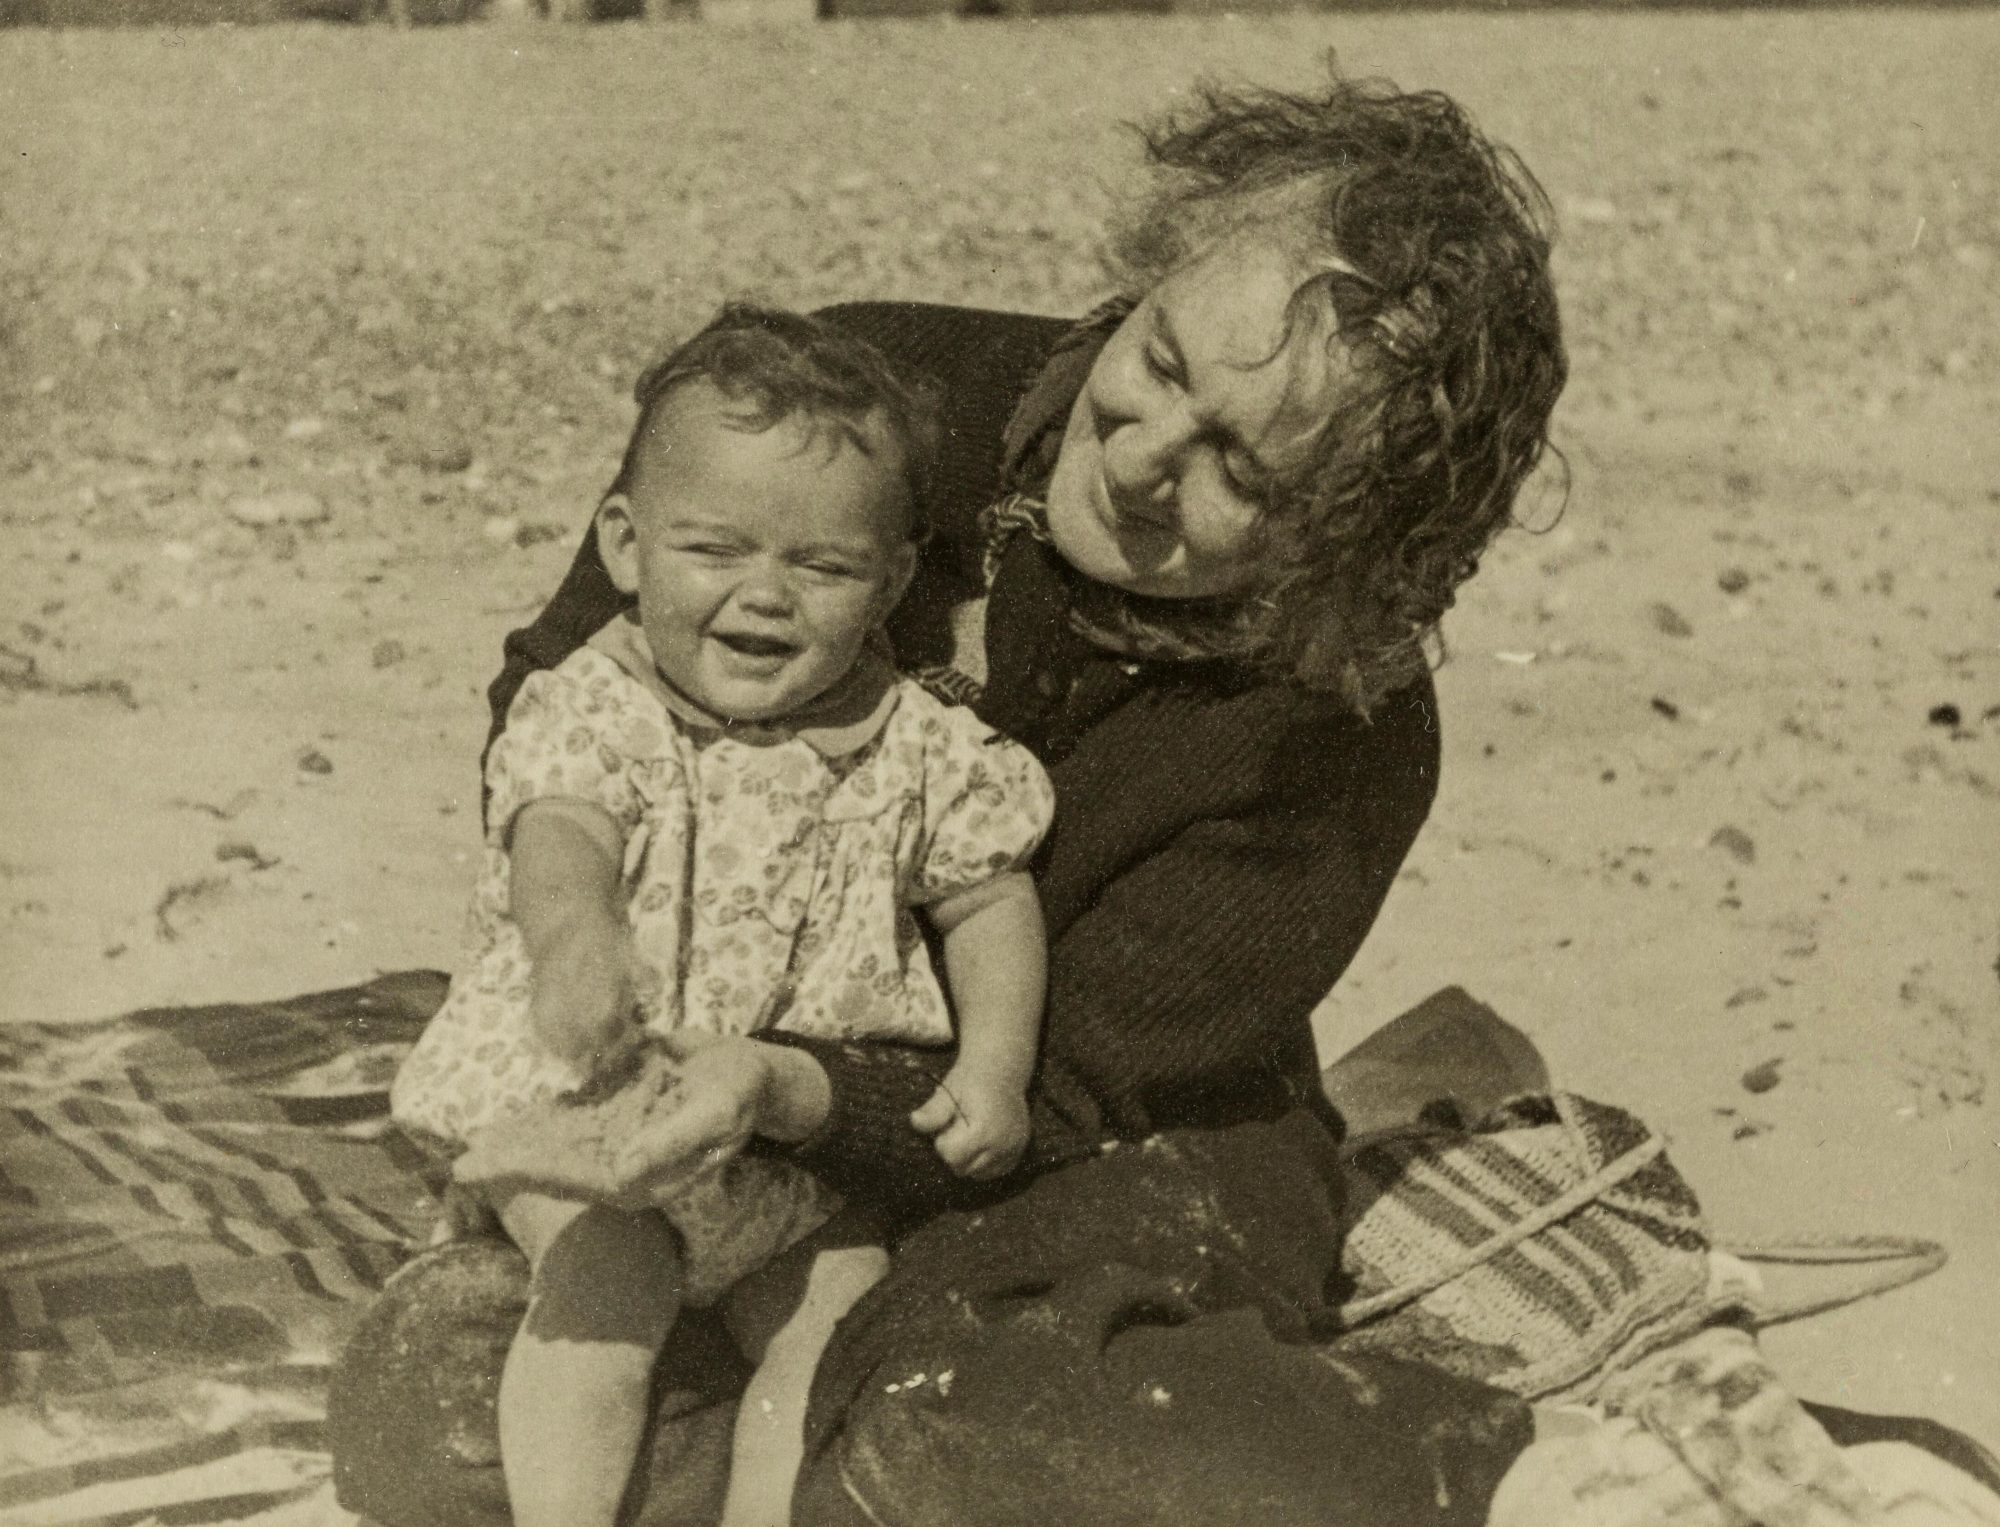 Photograph of Melanie Klein with her grandson Michael in 1938